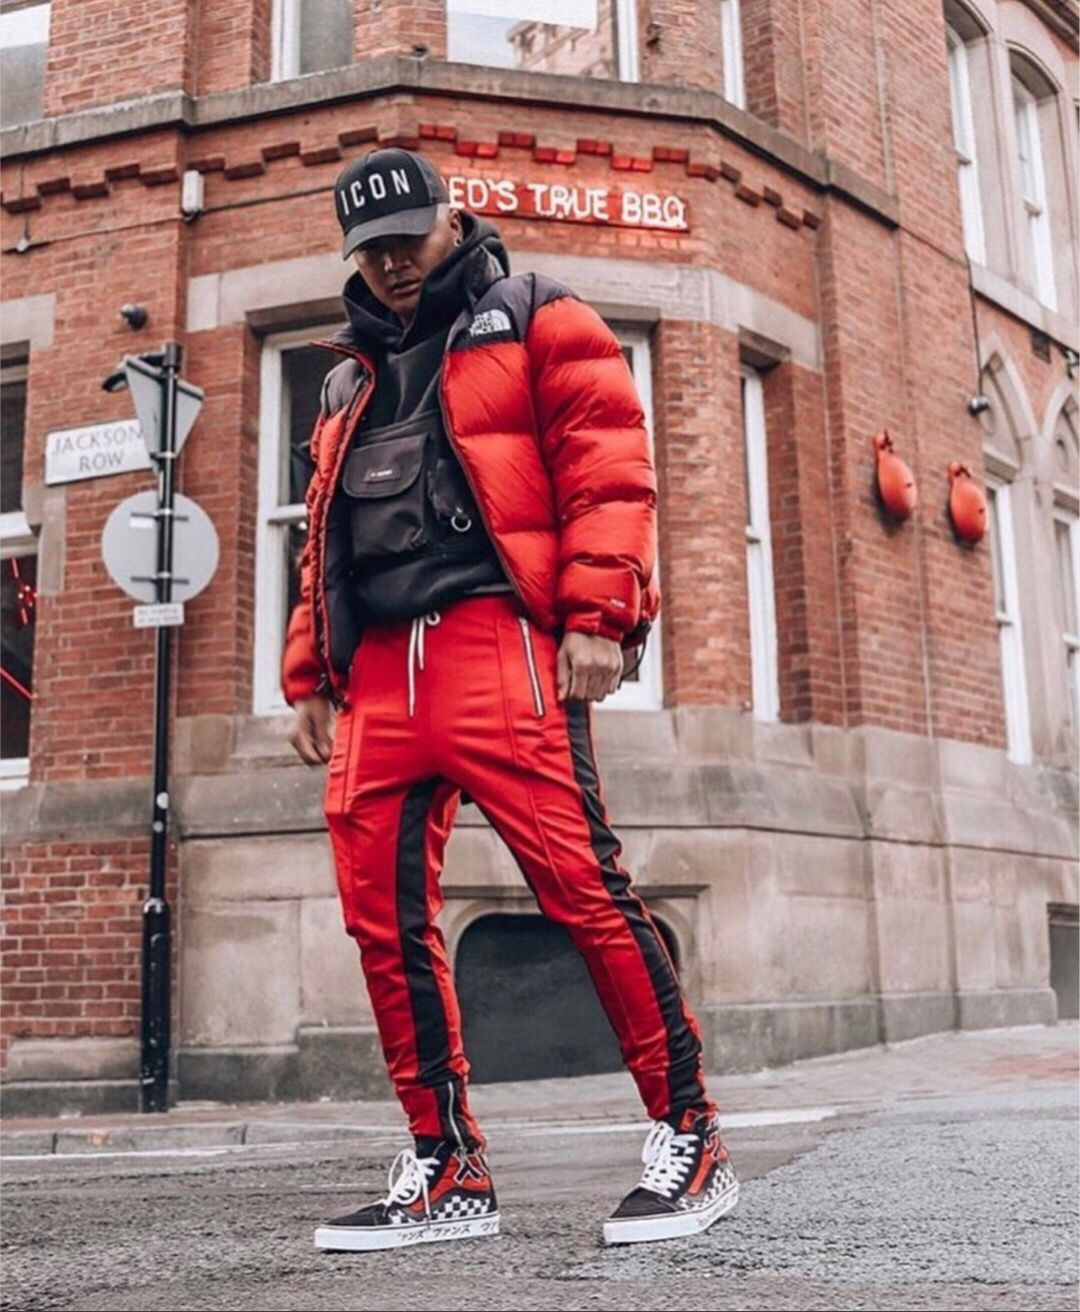 North Face Red Black Puffer Jacket Outfit Red Puffer Jacket Mens Outfits [ 1312 x 1080 Pixel ]